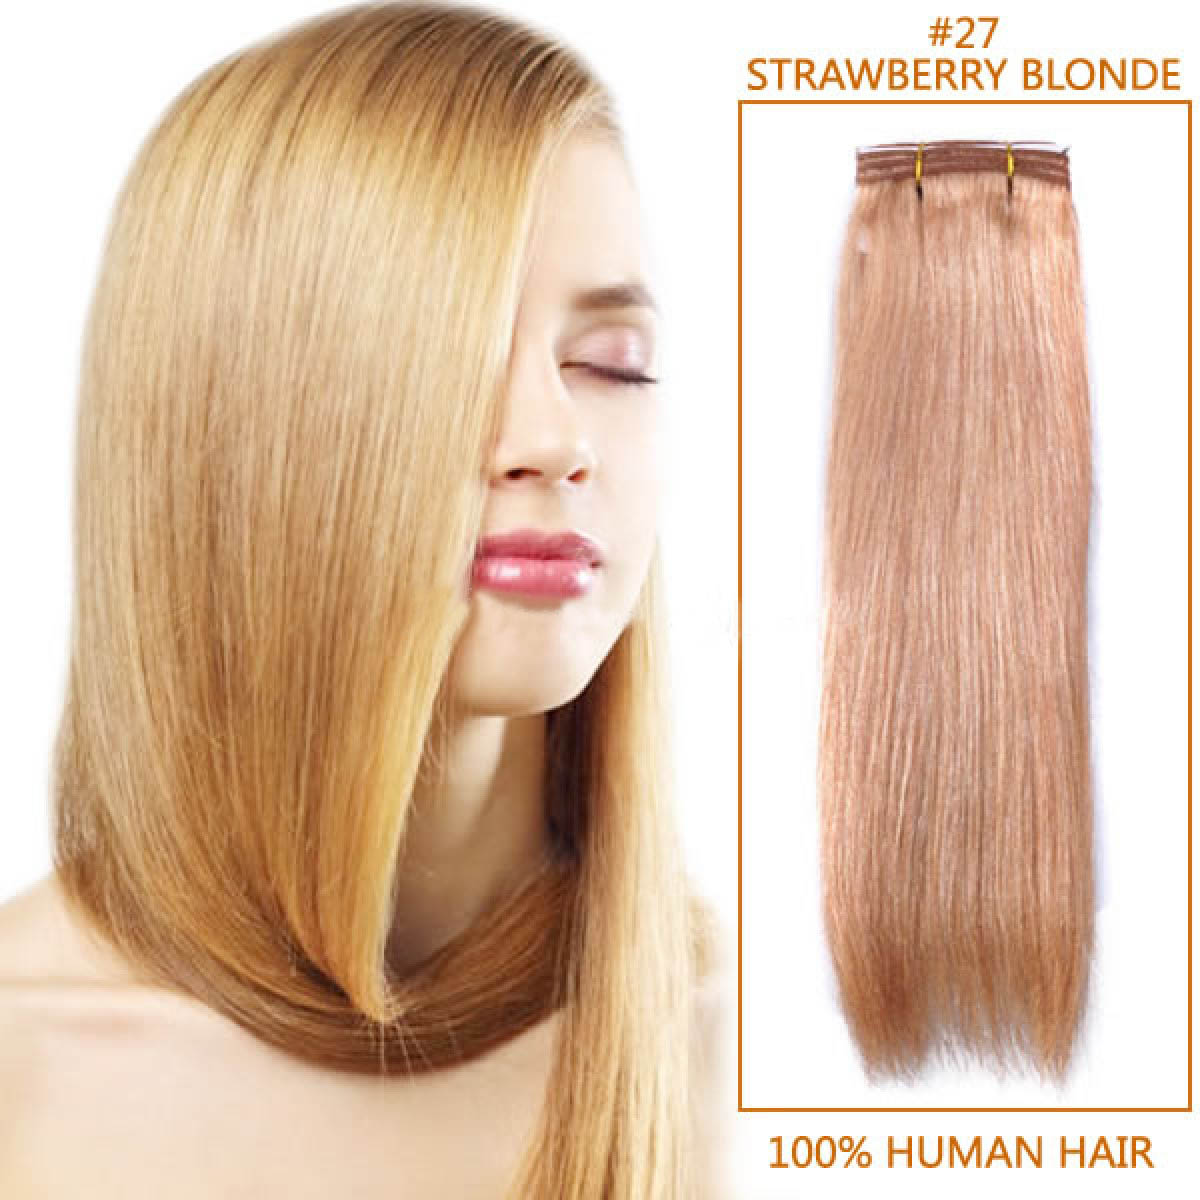 Inch #27 Strawberry Blonde Straight Indian Remy Hair Wefts